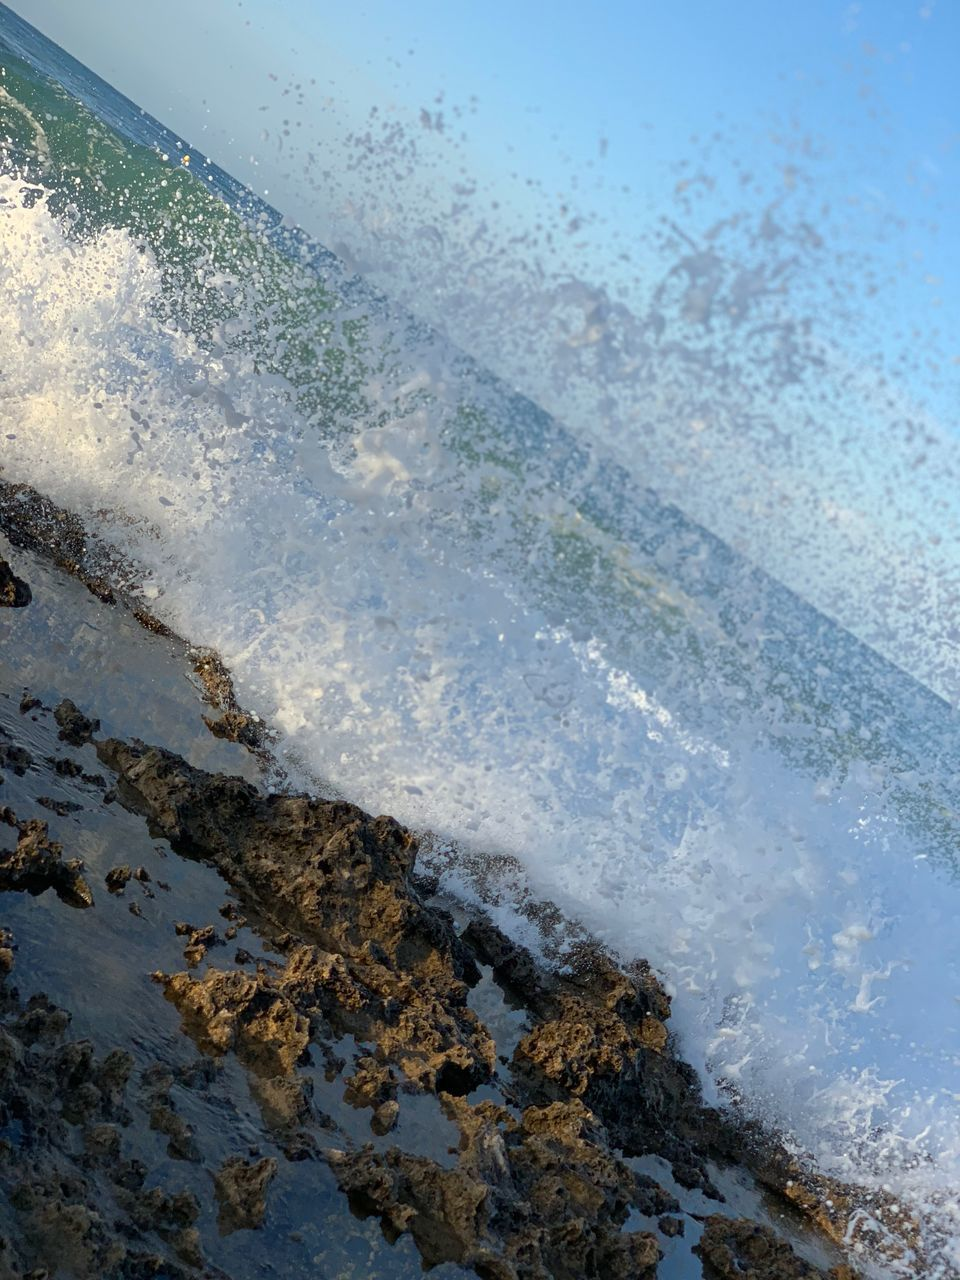 water, nature, no people, day, sea, motion, high angle view, beauty in nature, land, outdoors, sport, wet, splashing, aquatic sport, beach, waterfront, wave, power in nature, purity, flowing